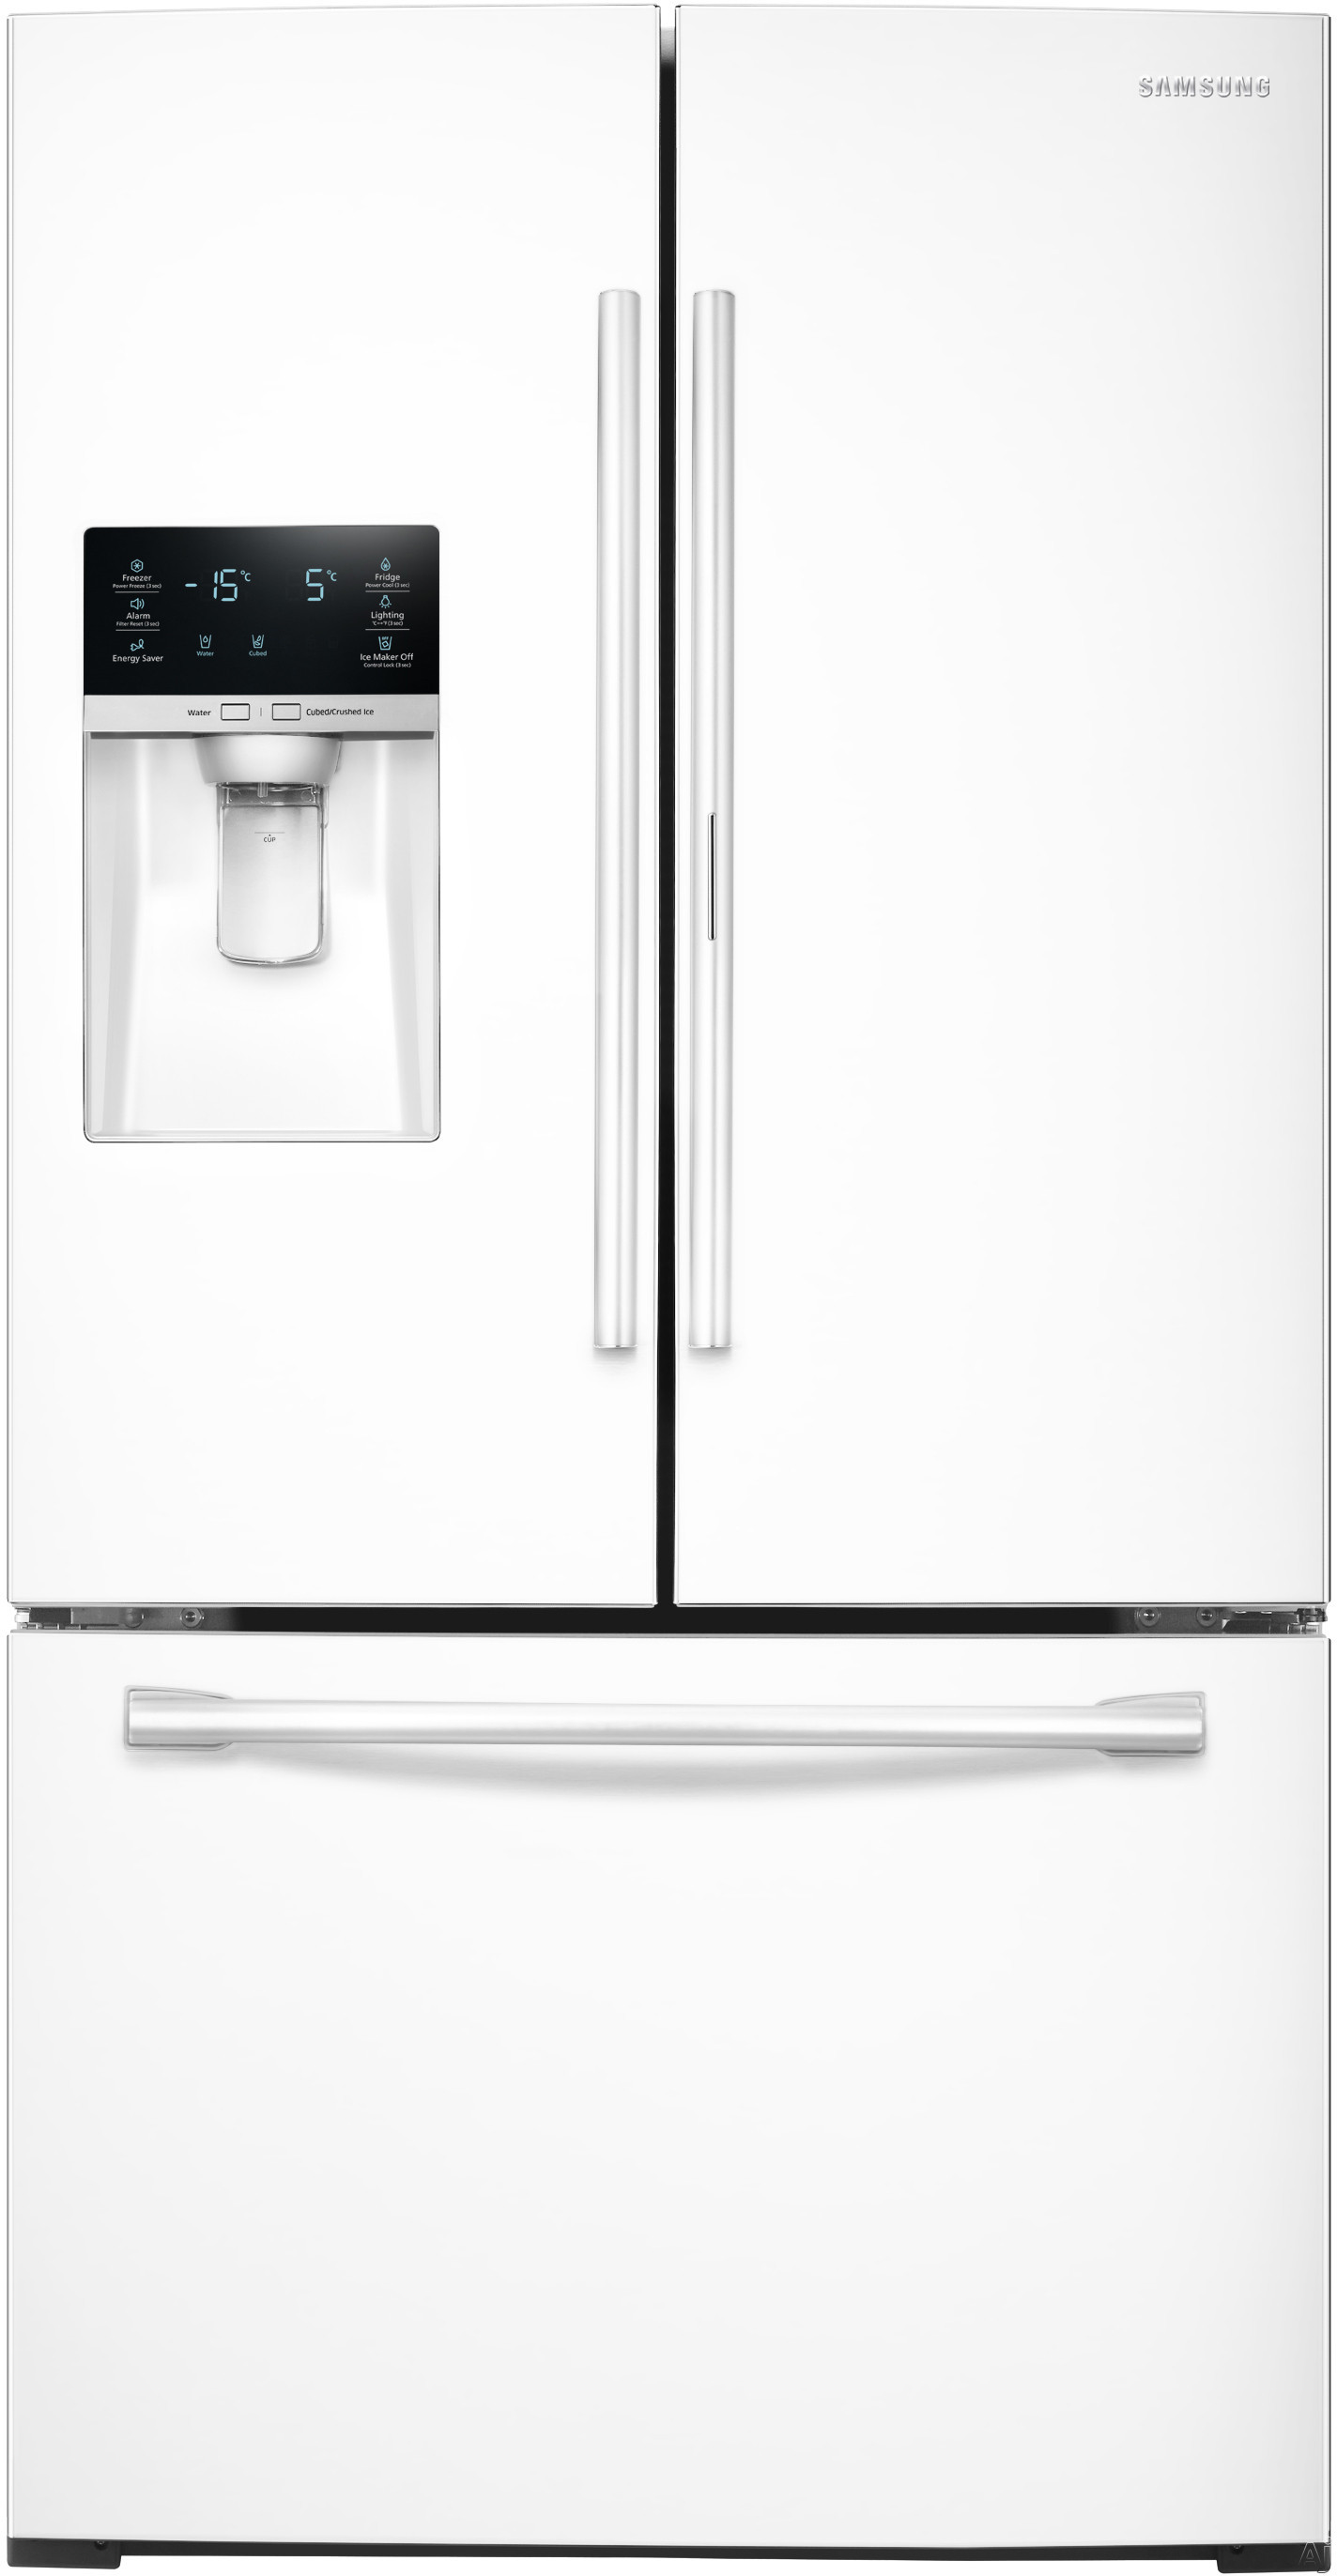 Samsung RF28HDEDPWW 27.8 cu. ft. French Door Refrigerator with 5 Spillproof Glass Shelves, Food ShowCase Fridge Door, Metal Cooling, External Ice/Water Dispenser, CoolSelect Pantry and Humidity Controlled Crispers: White